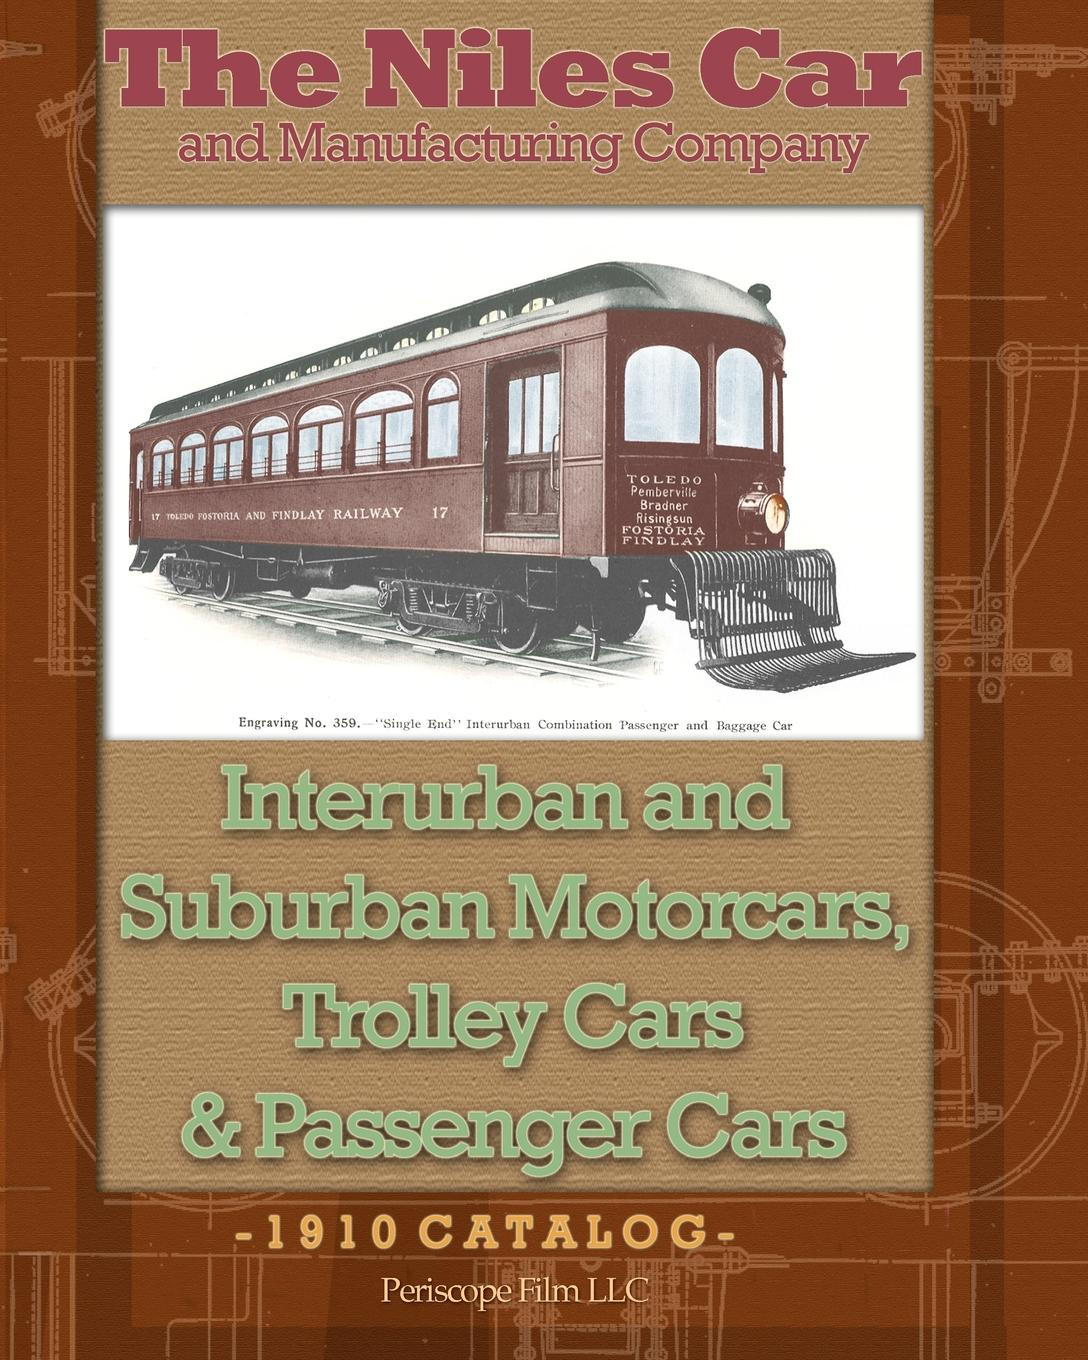 The Niles Car and Manufacturing Company The Niles Car and Manufacturing Company Interurban and Suburban Motorcars, Trolley Cars & Passenger Cars d niles the kinslaer wars